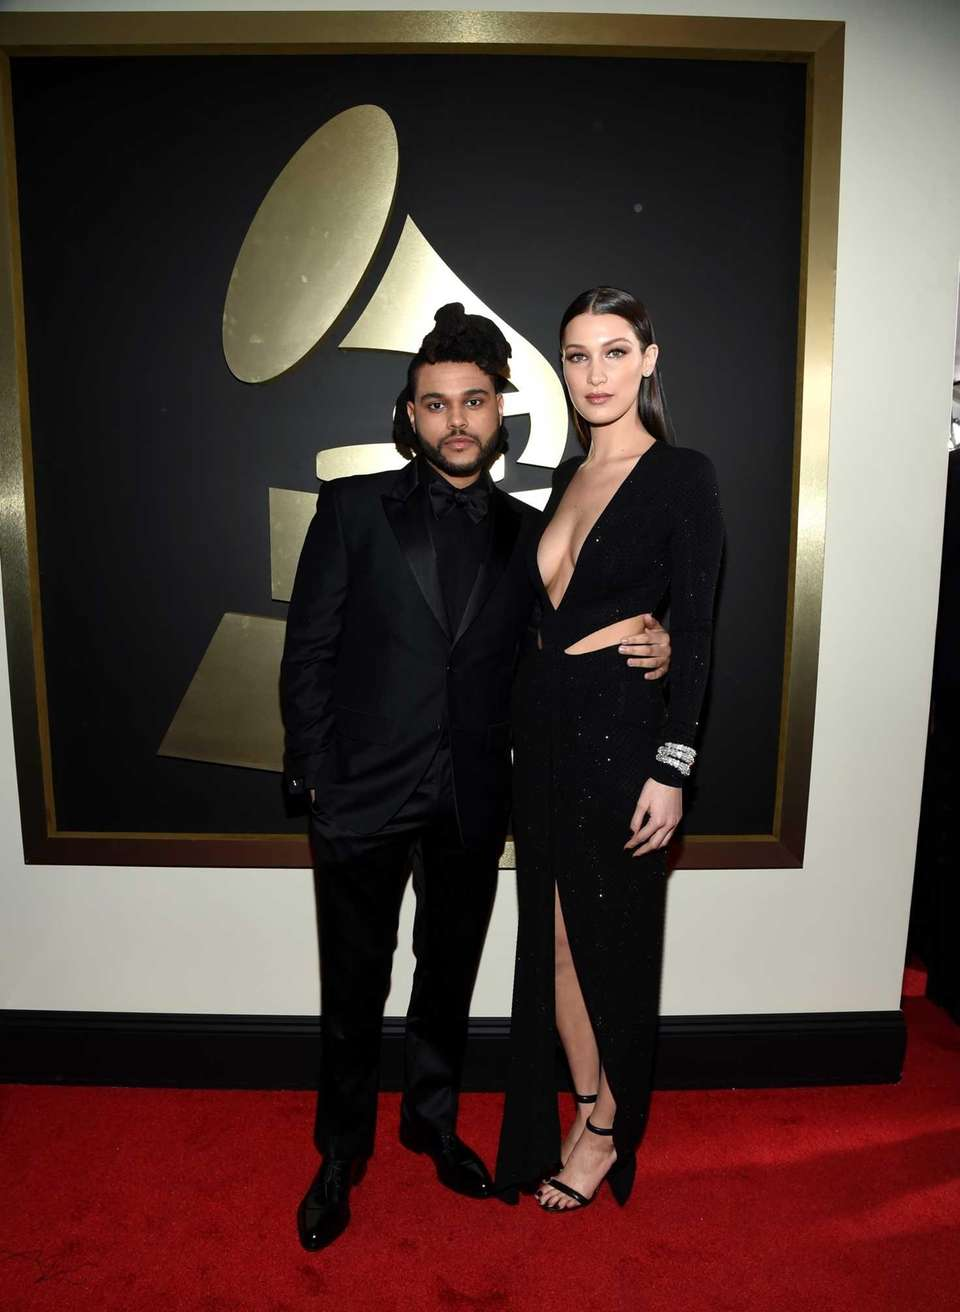 The Weeknd and model Bella Hadid called it